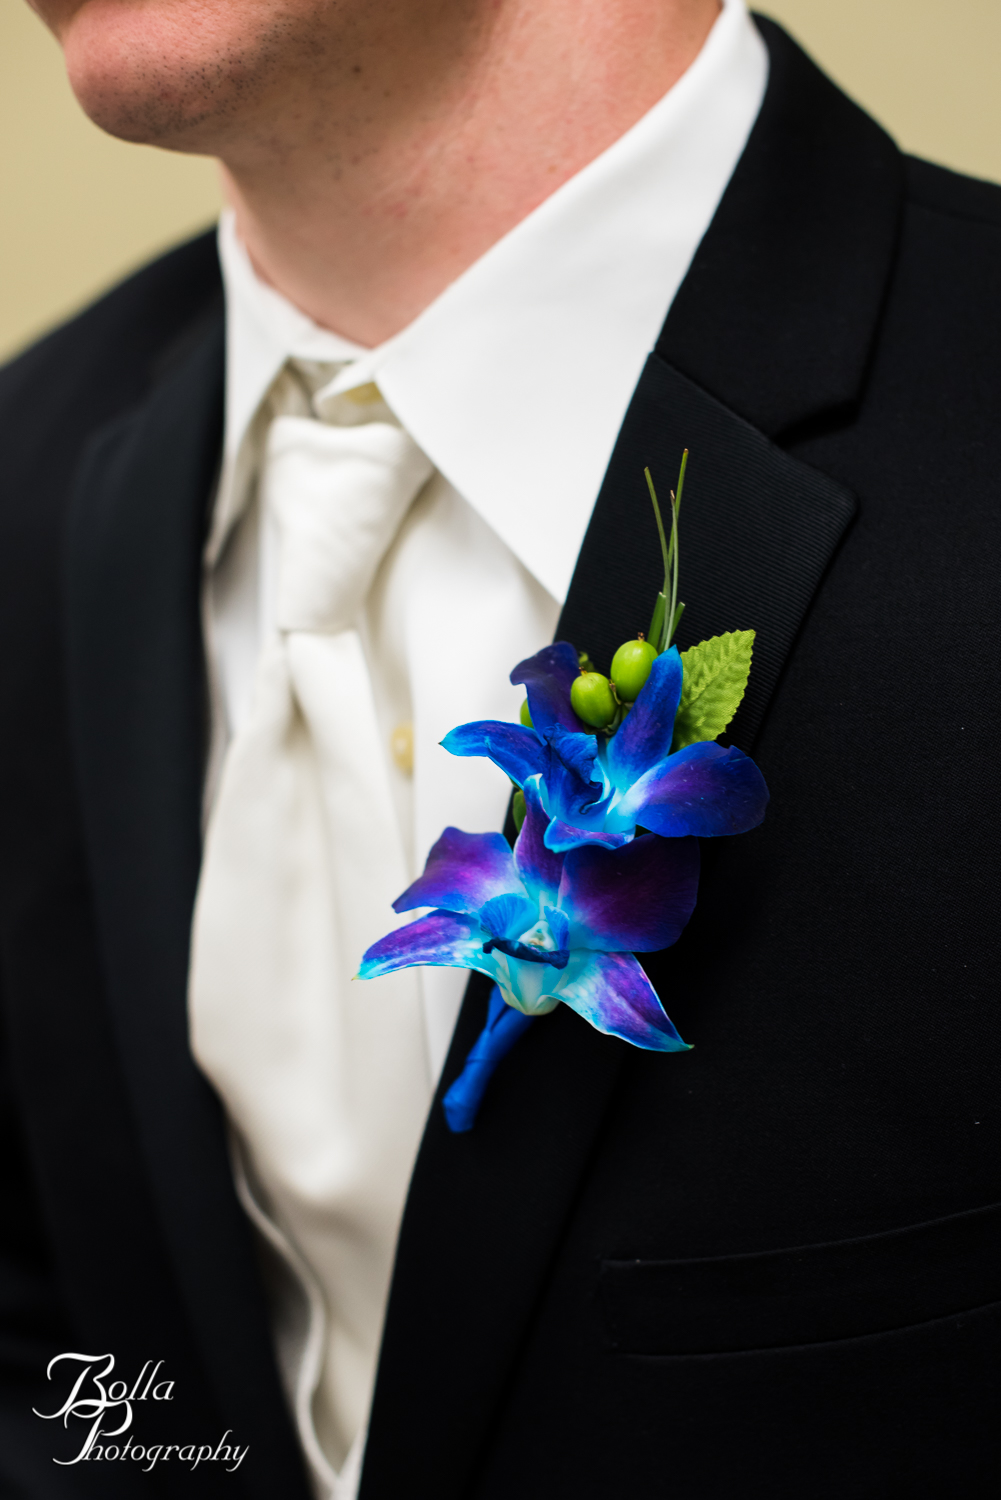 Bolla_Photography_St_Louis_wedding_photographer_Edwardsville_Highland-0067.jpg